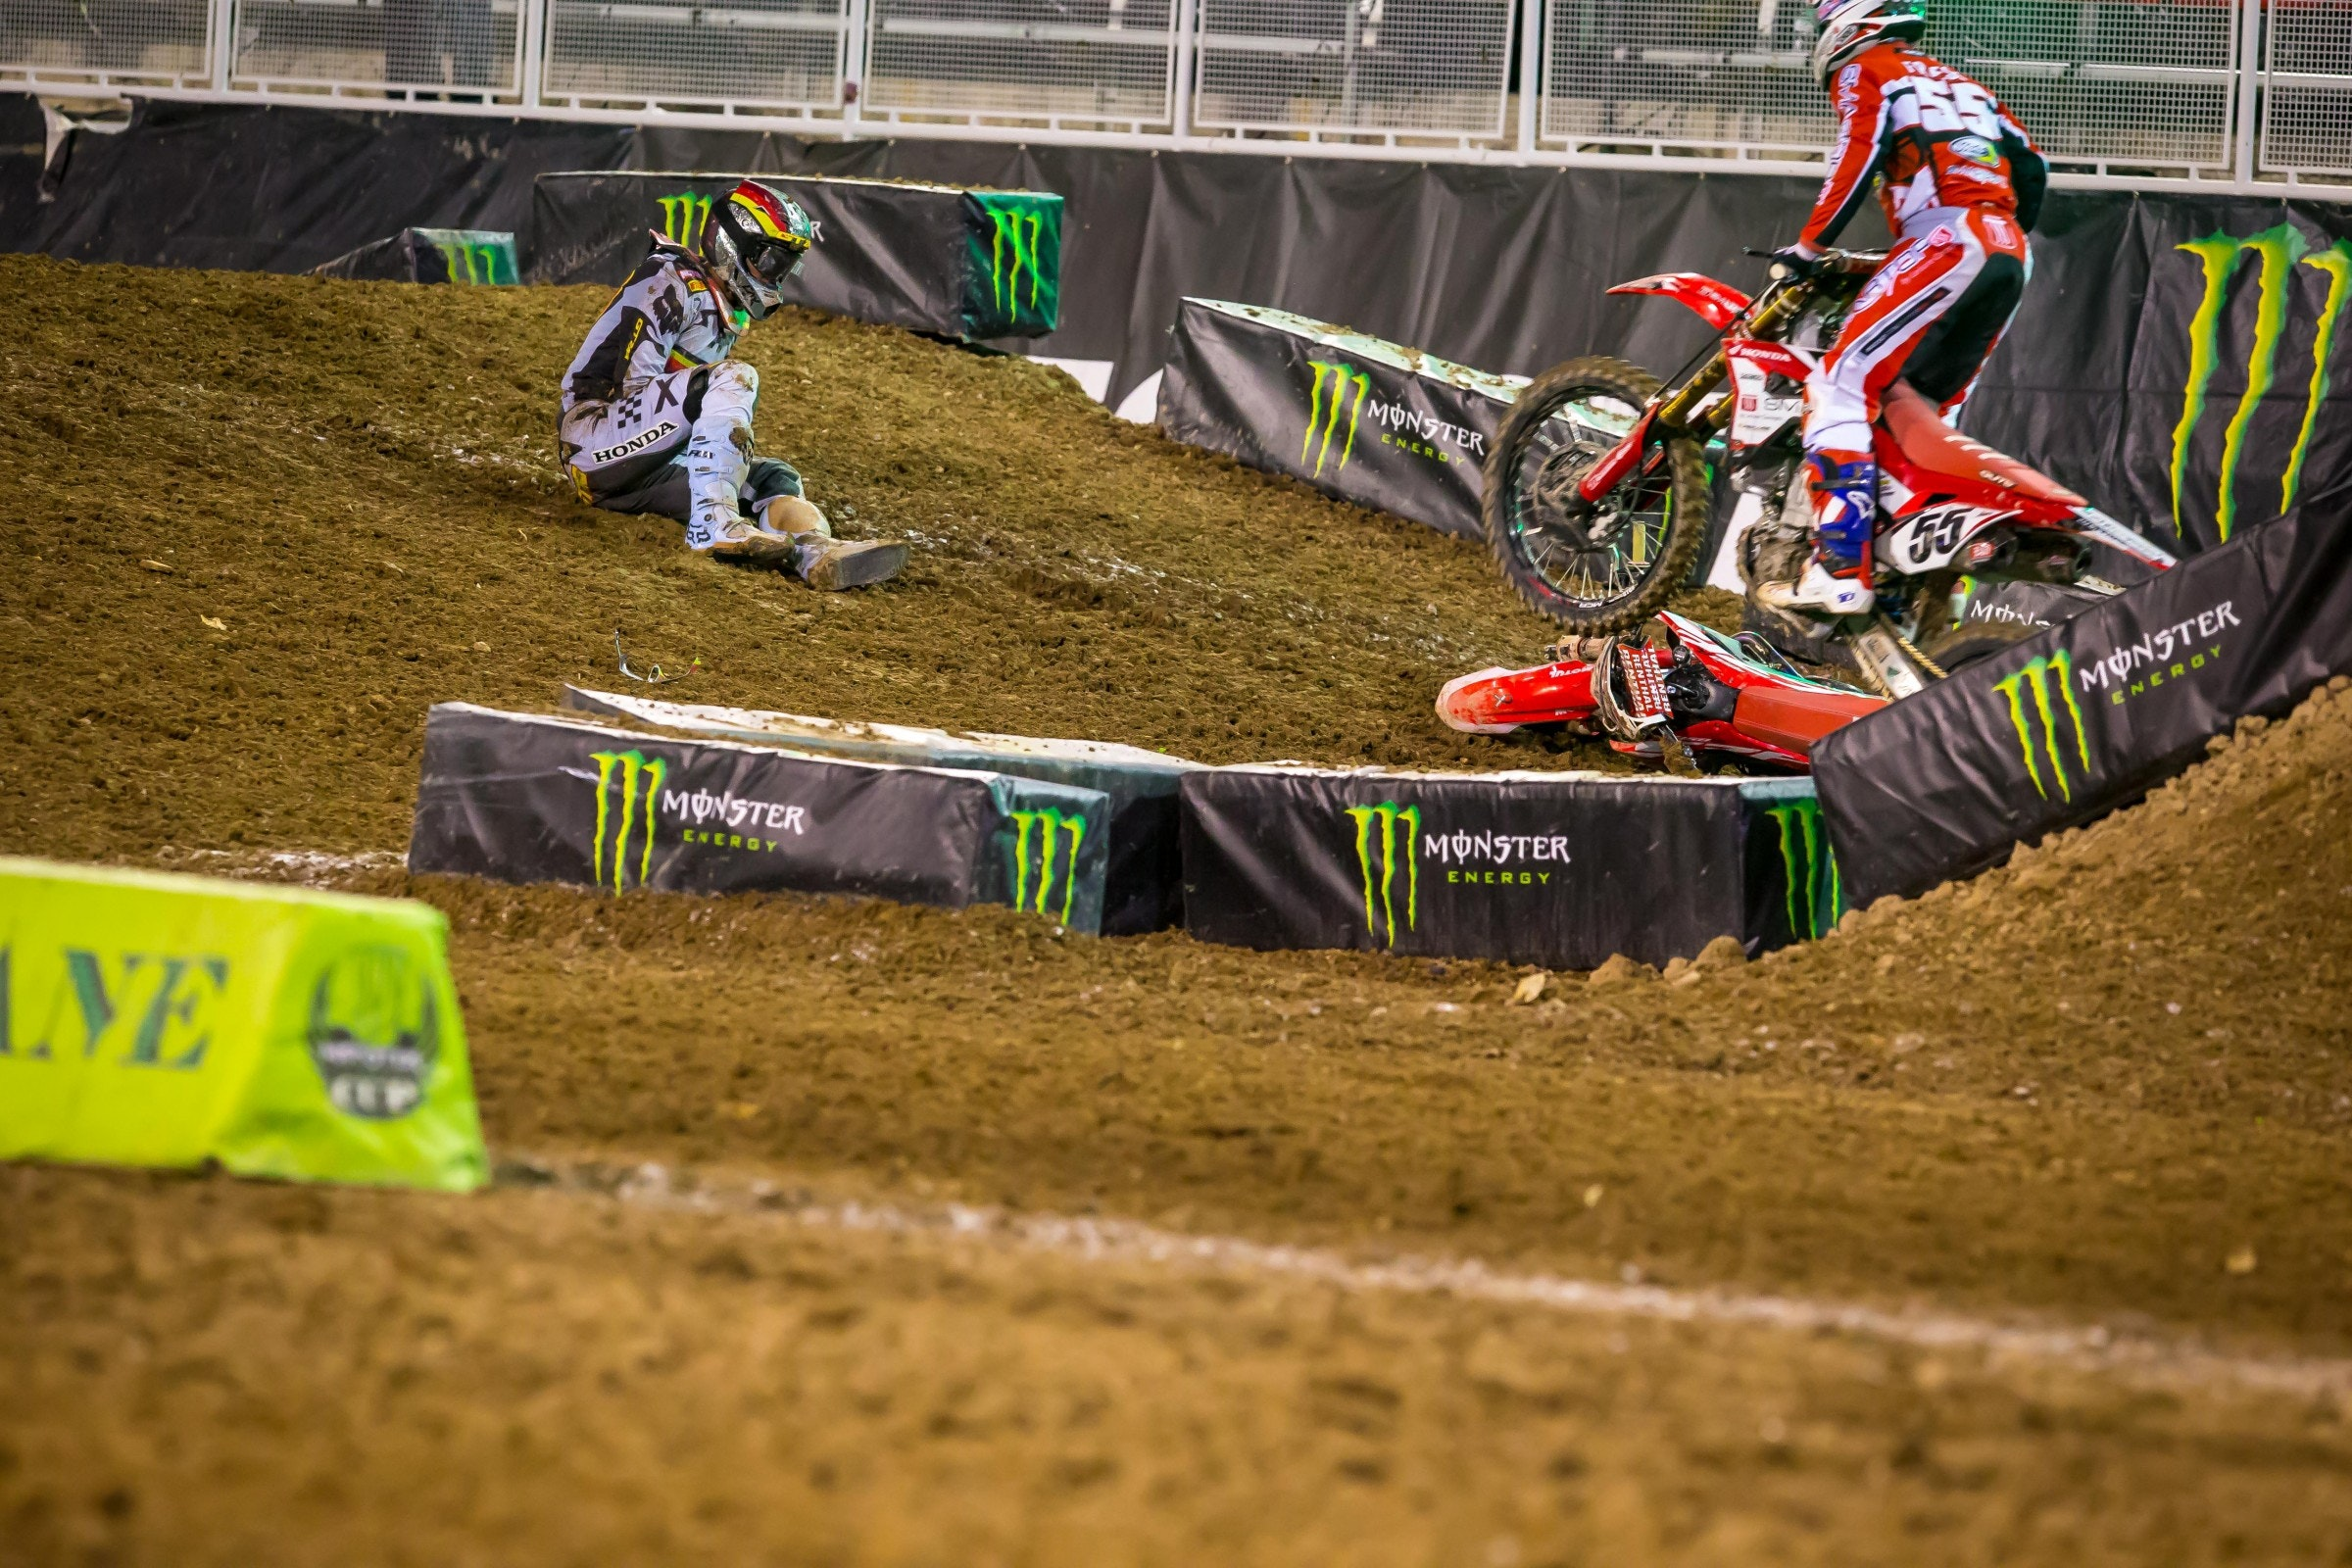 Gajser crashed in the first main event and did not return.